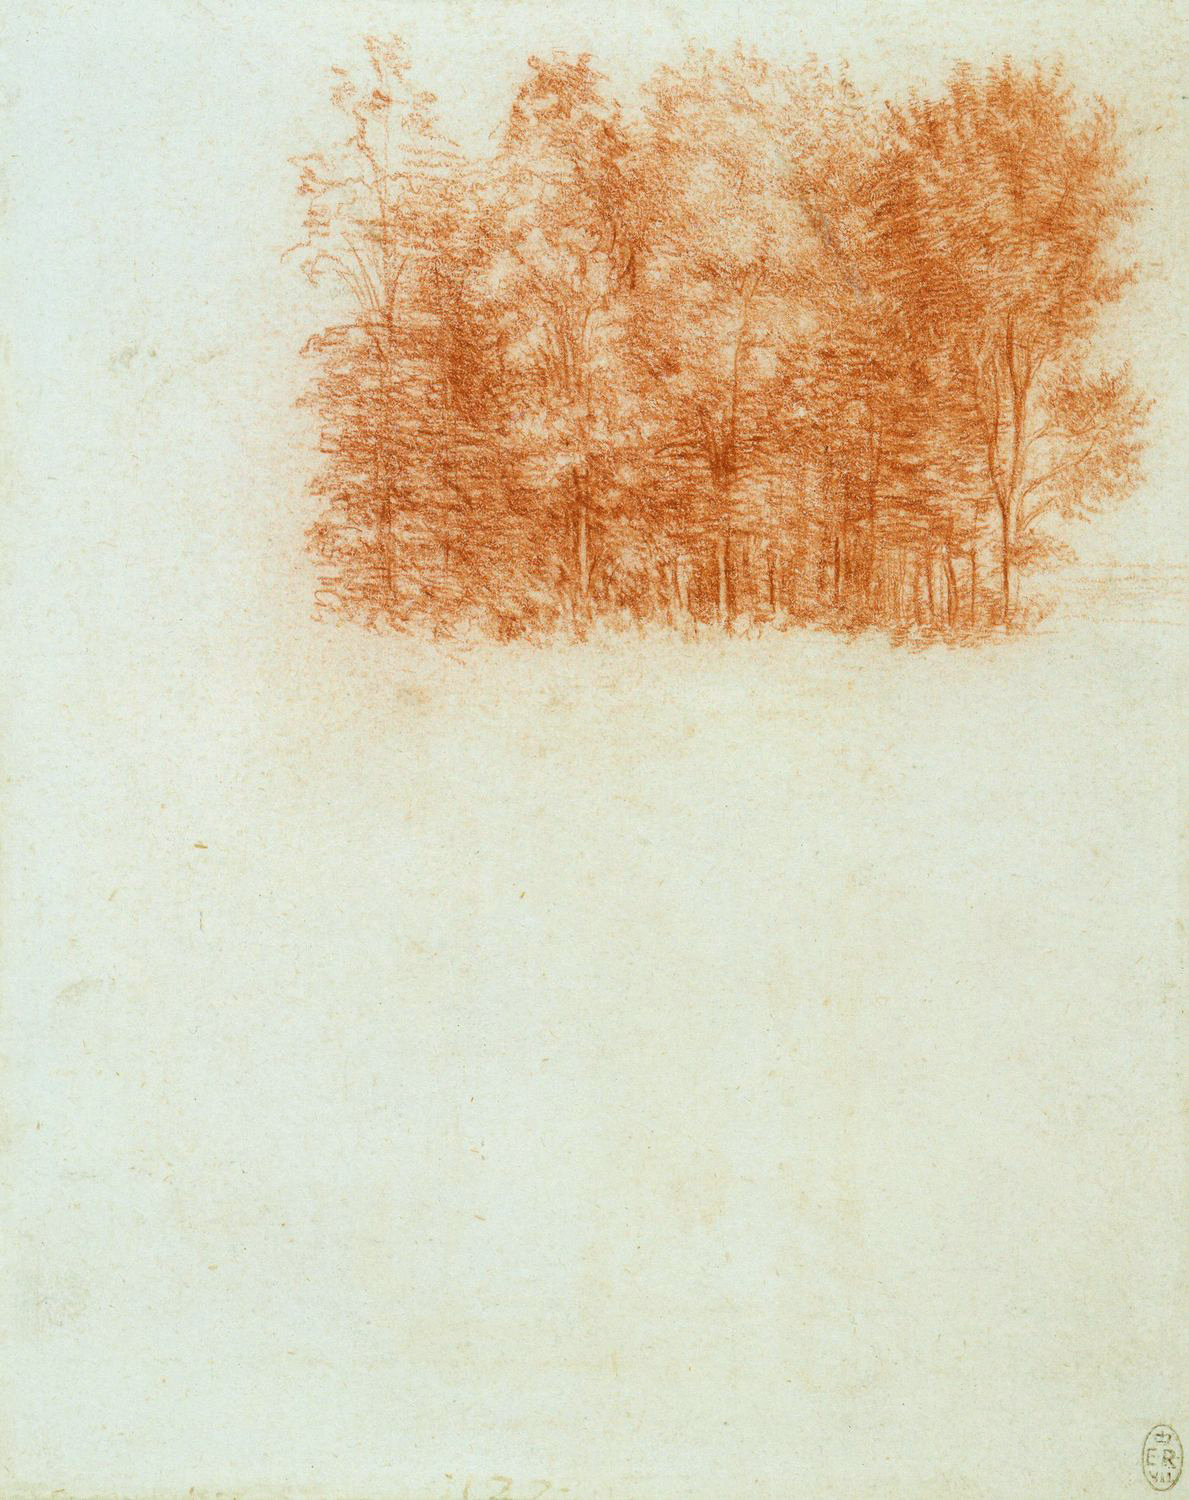 Leonardo da Vinci - Drawings - Plants - 12.jpg